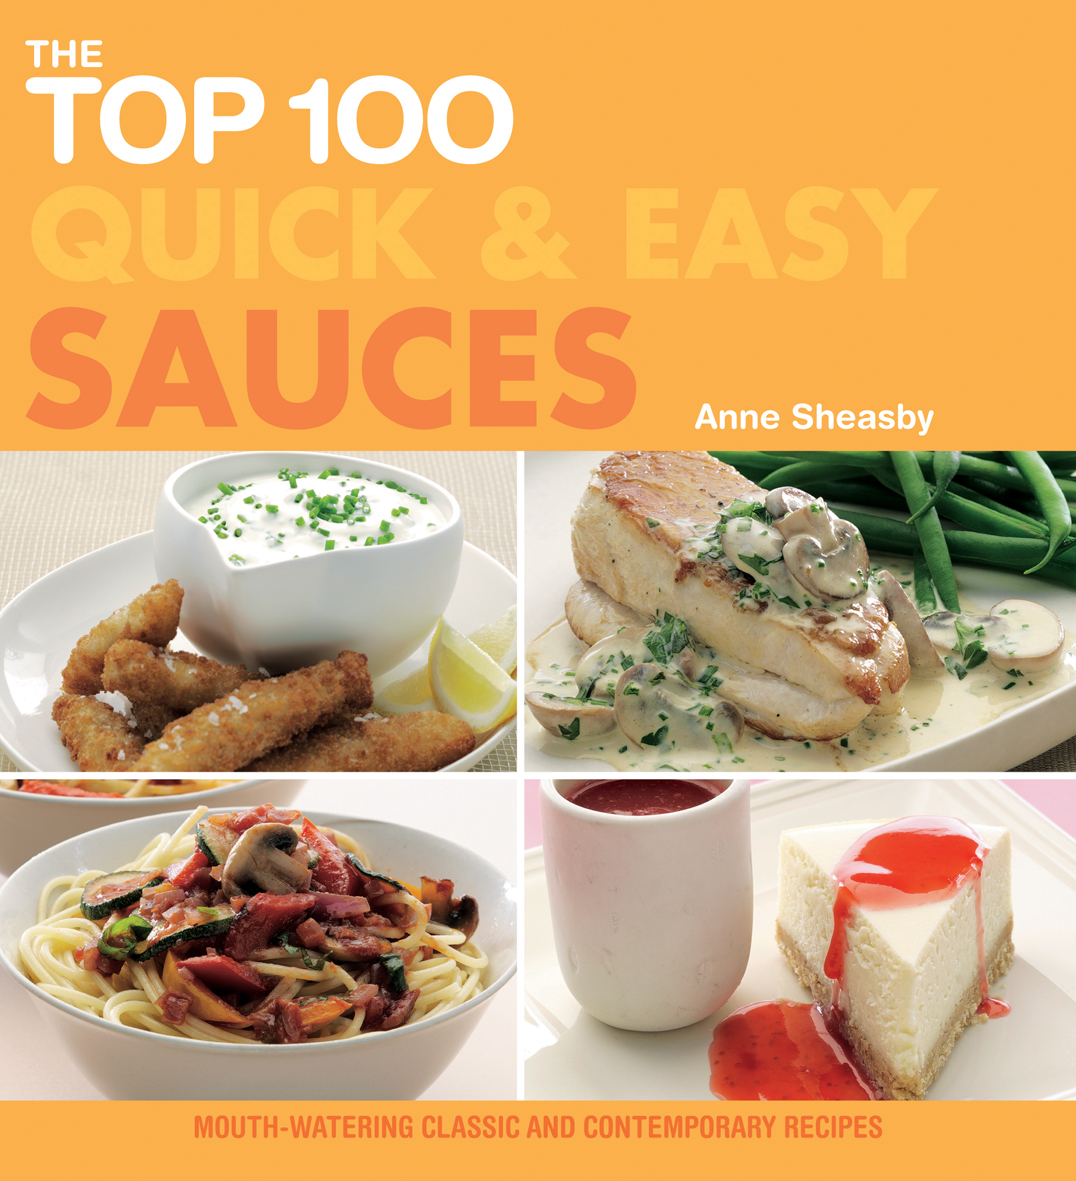 Mouth-watering classic and contemporary recipes